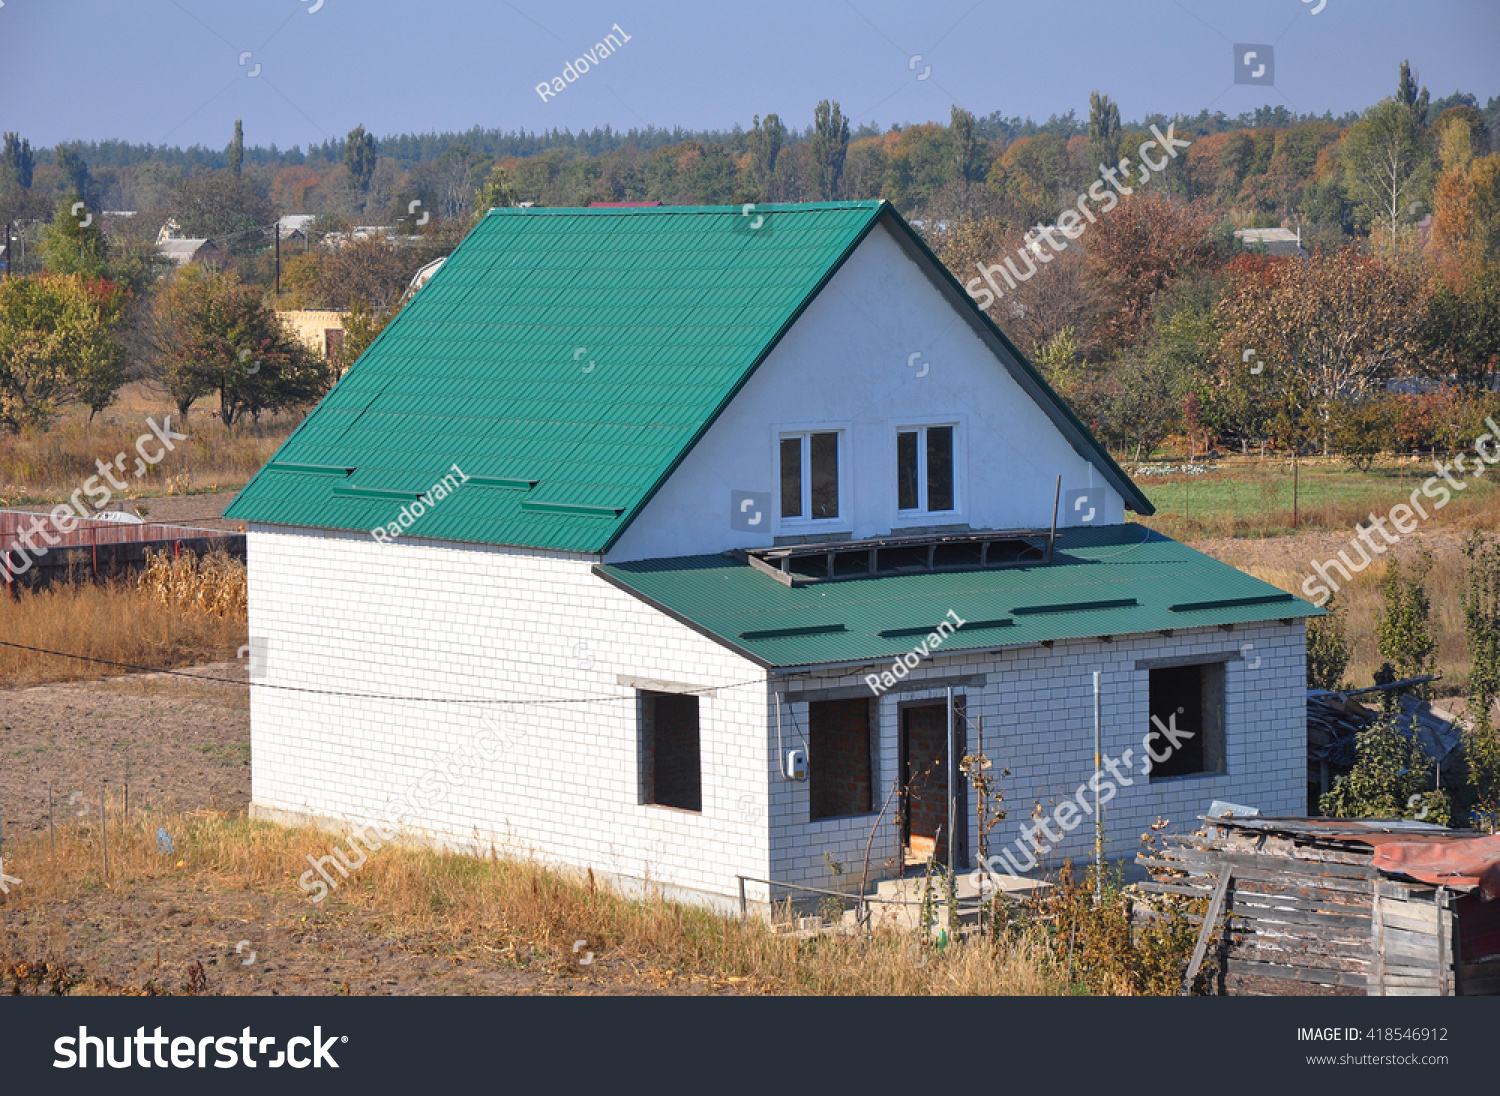 Building new white bricks country house with green metal roof with roof protection from snow board & Building New White Bricks Country House Stock Photo 418546912 ... memphite.com